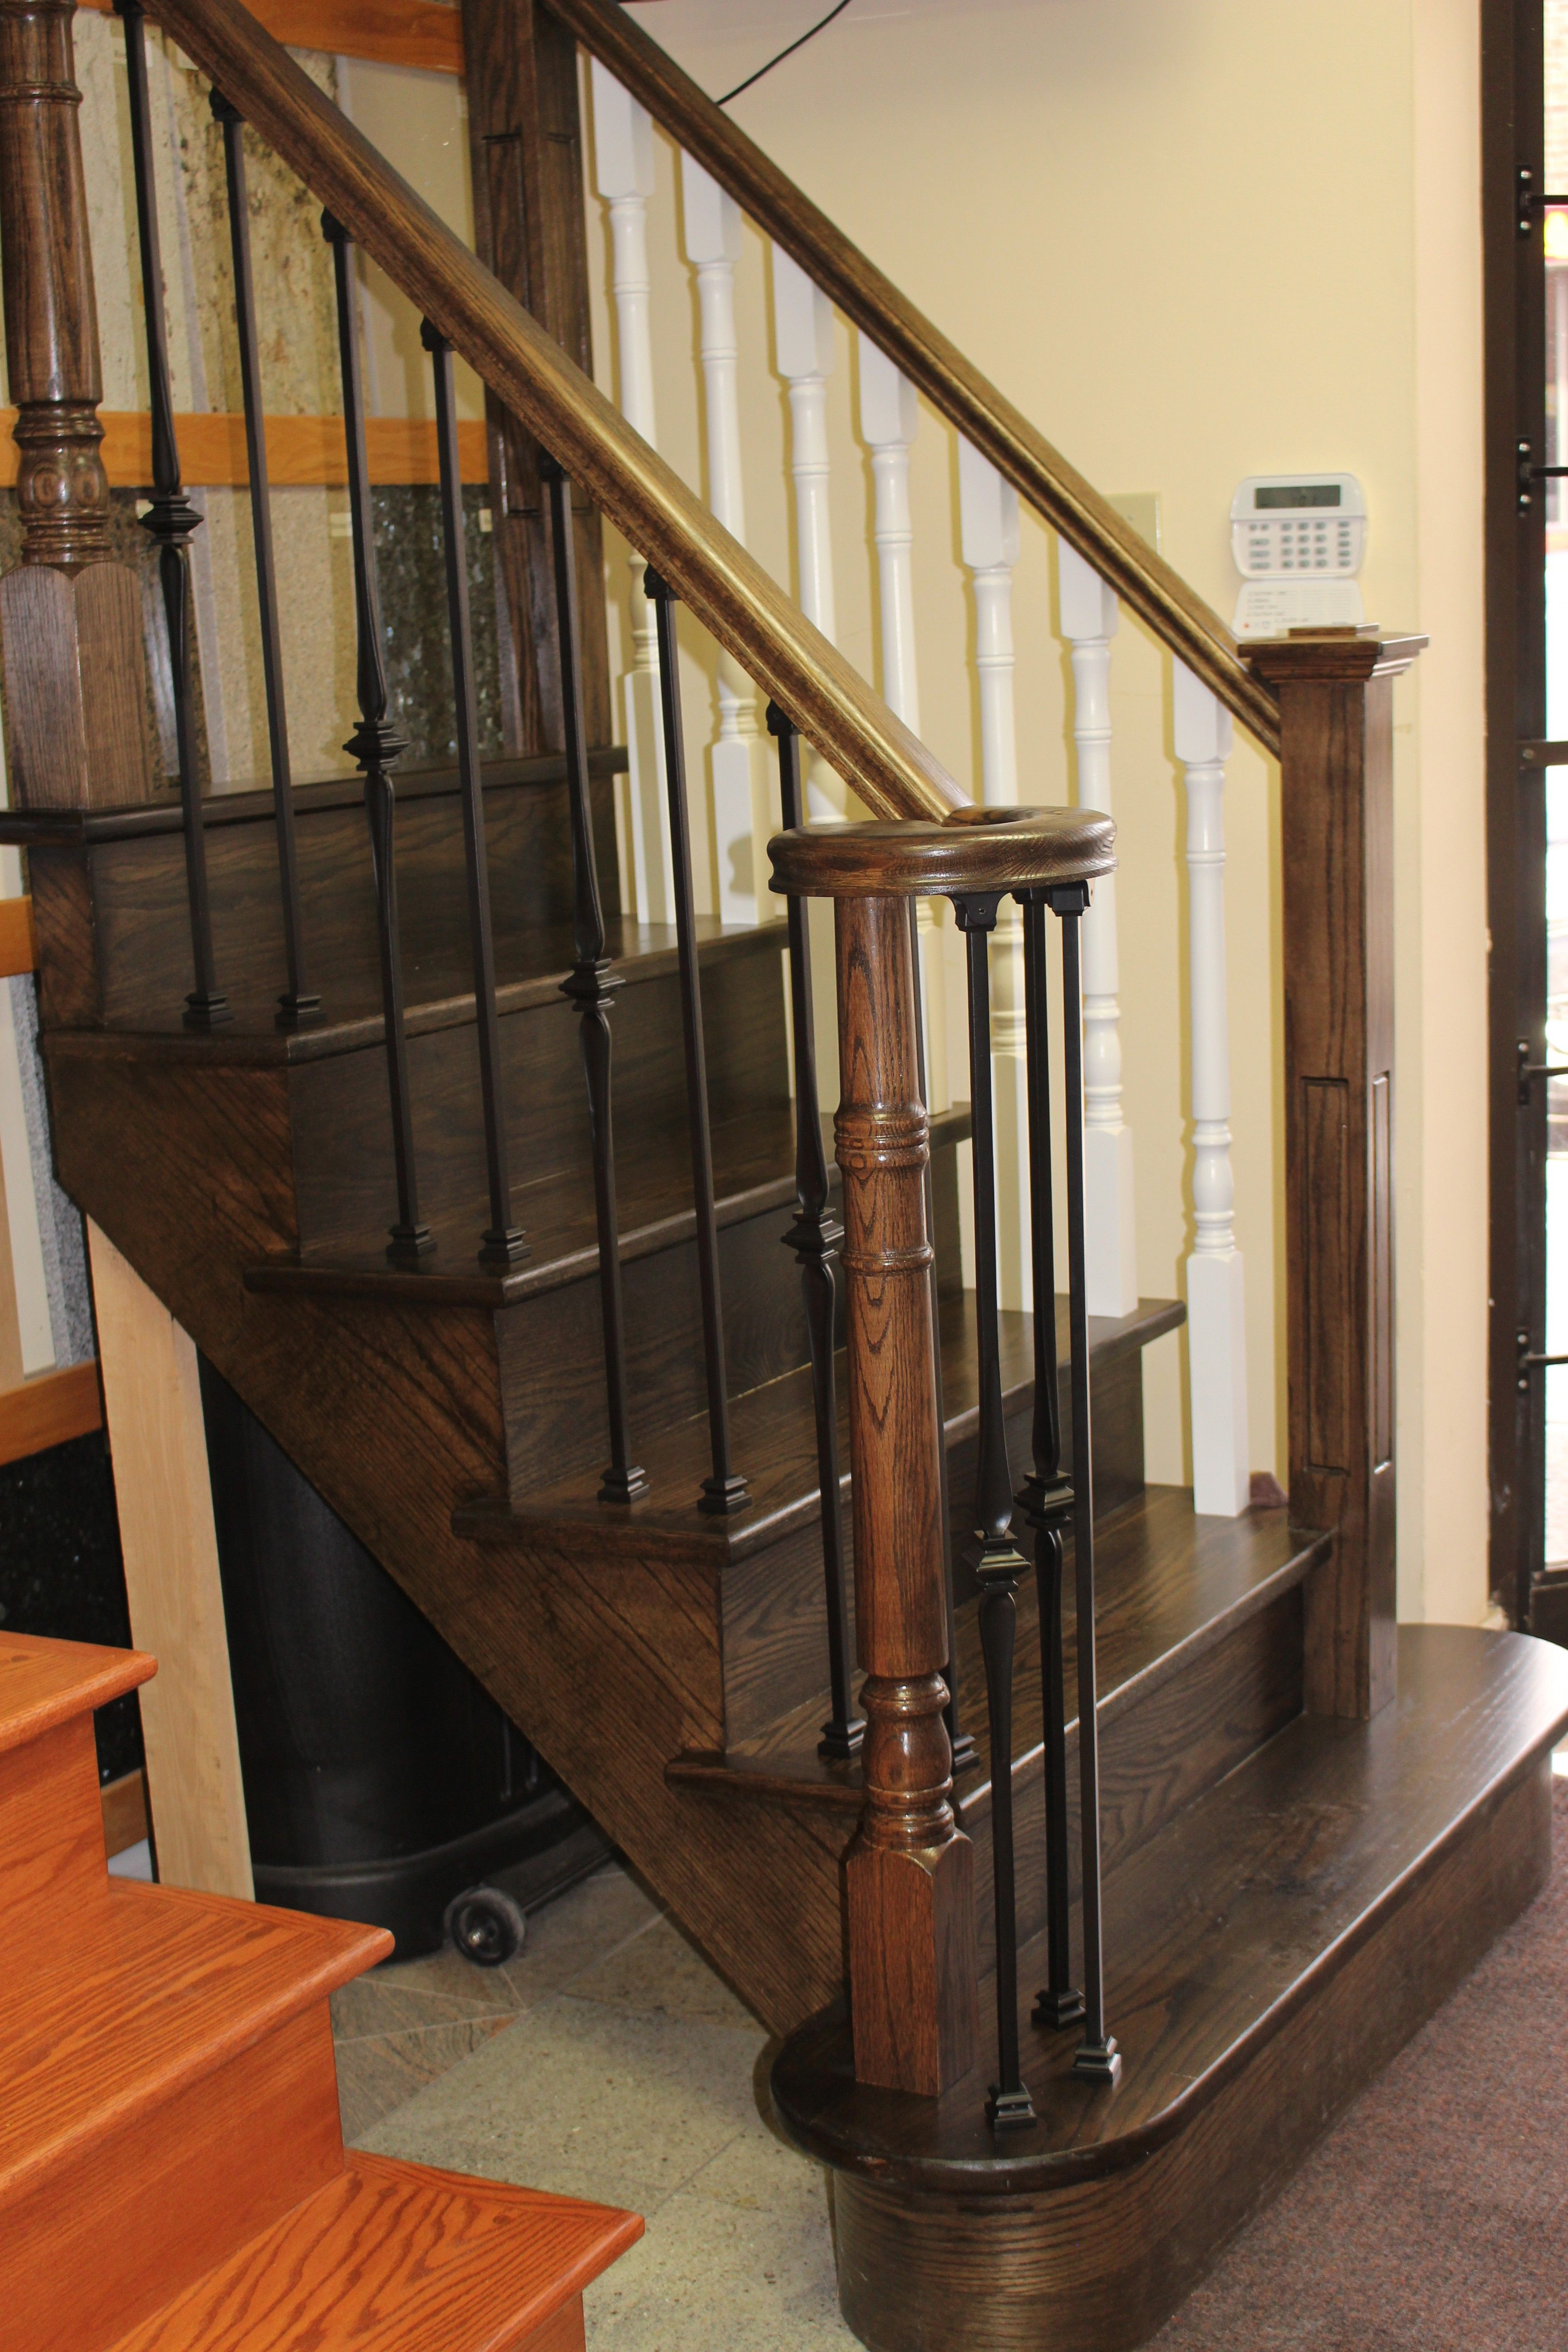 Ideal Stairs - Stair Display With Wrought Iron And Wooden